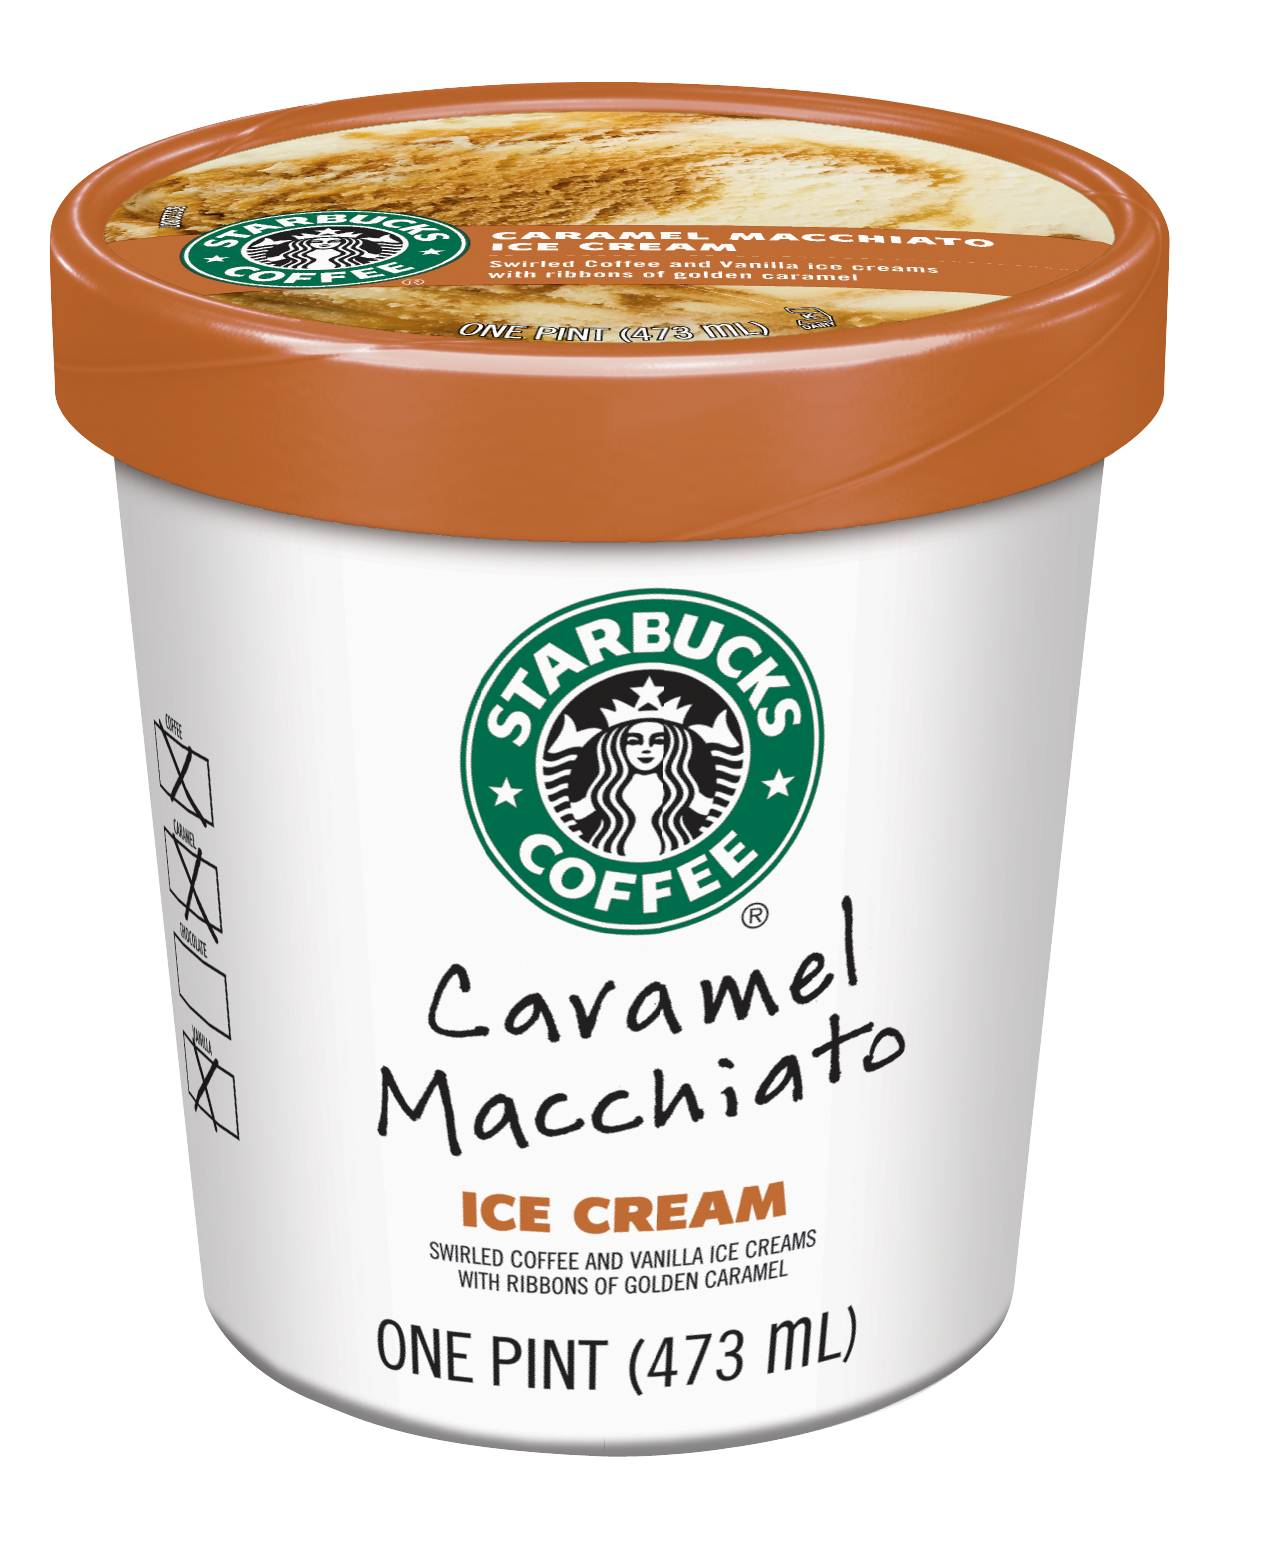 Starbucks Turns The Worst Of Coffee Into The Best Of Ice Cream